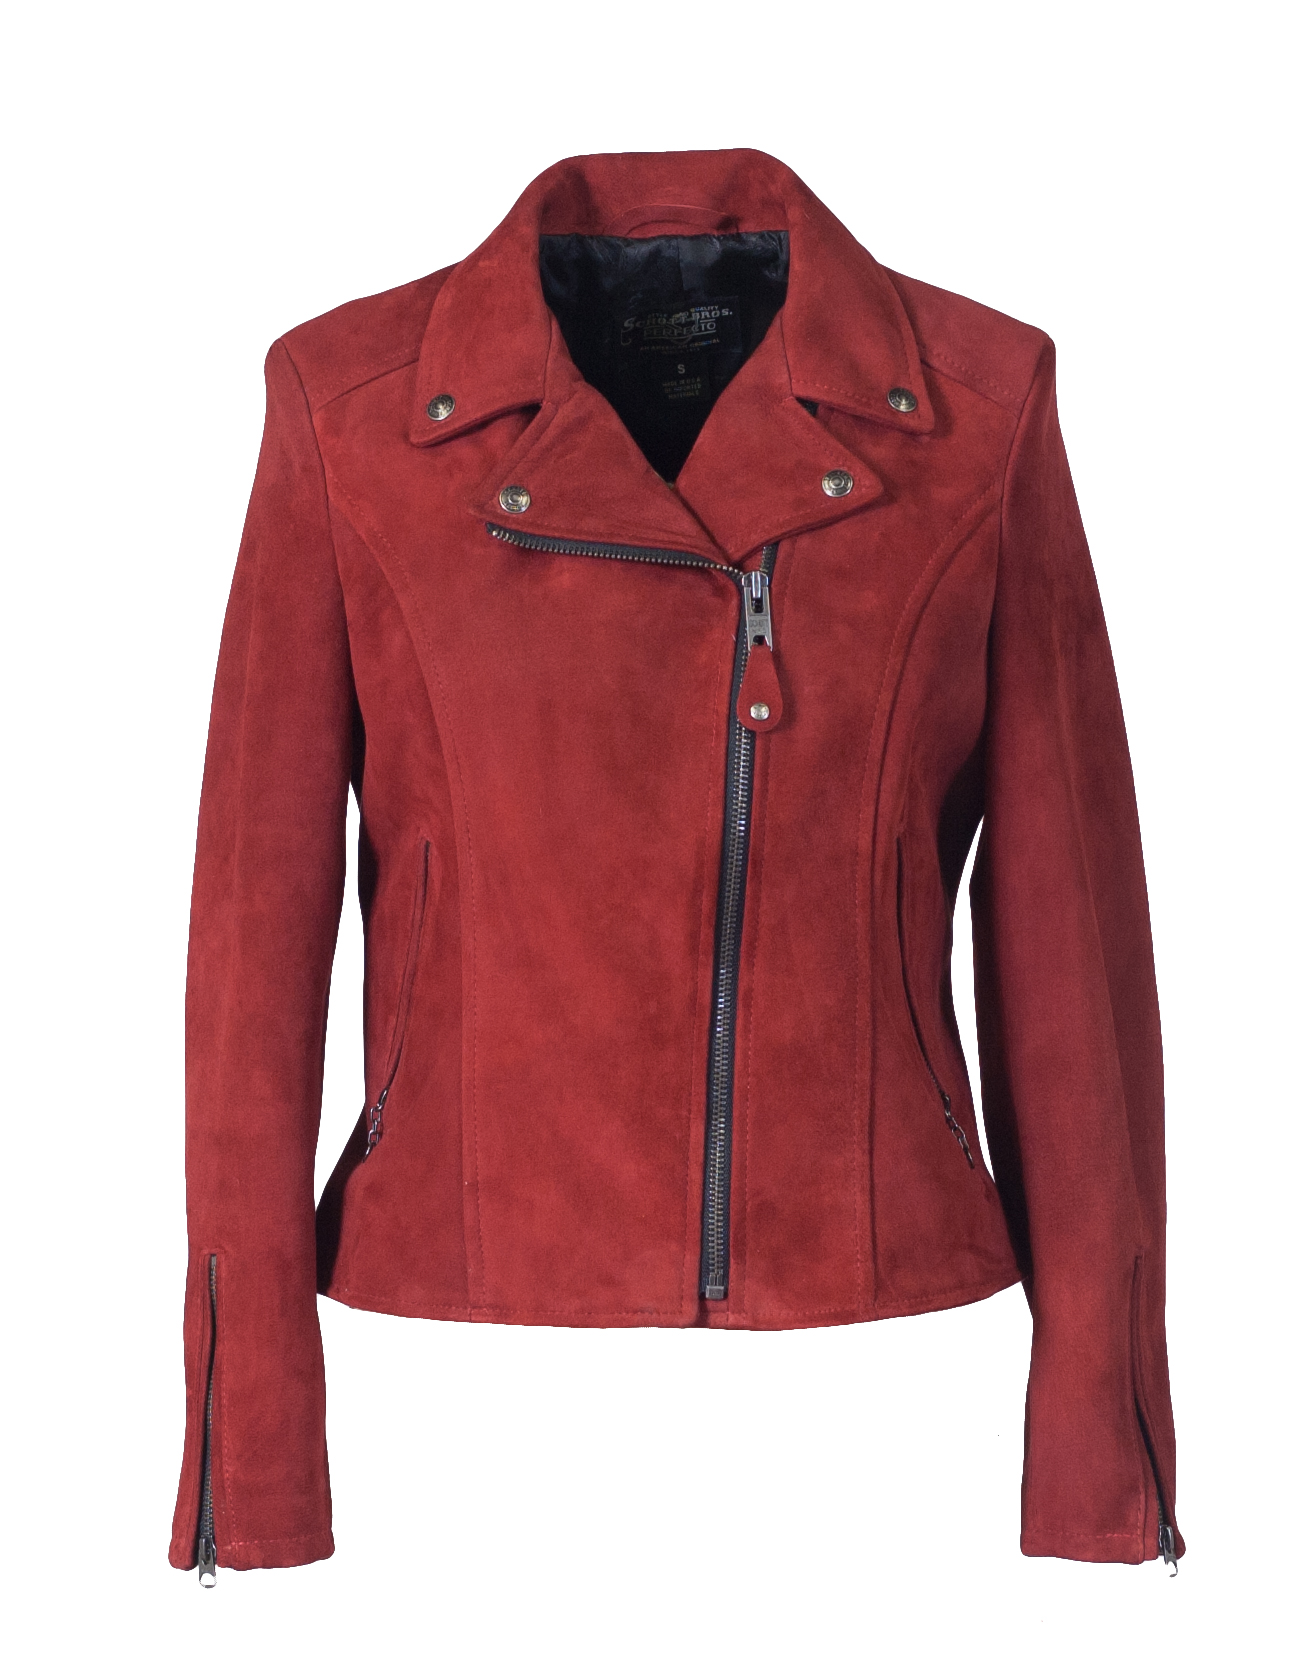 Schott N.Y.C. 206W Women's Fitted Suede Motorcycle Jacket